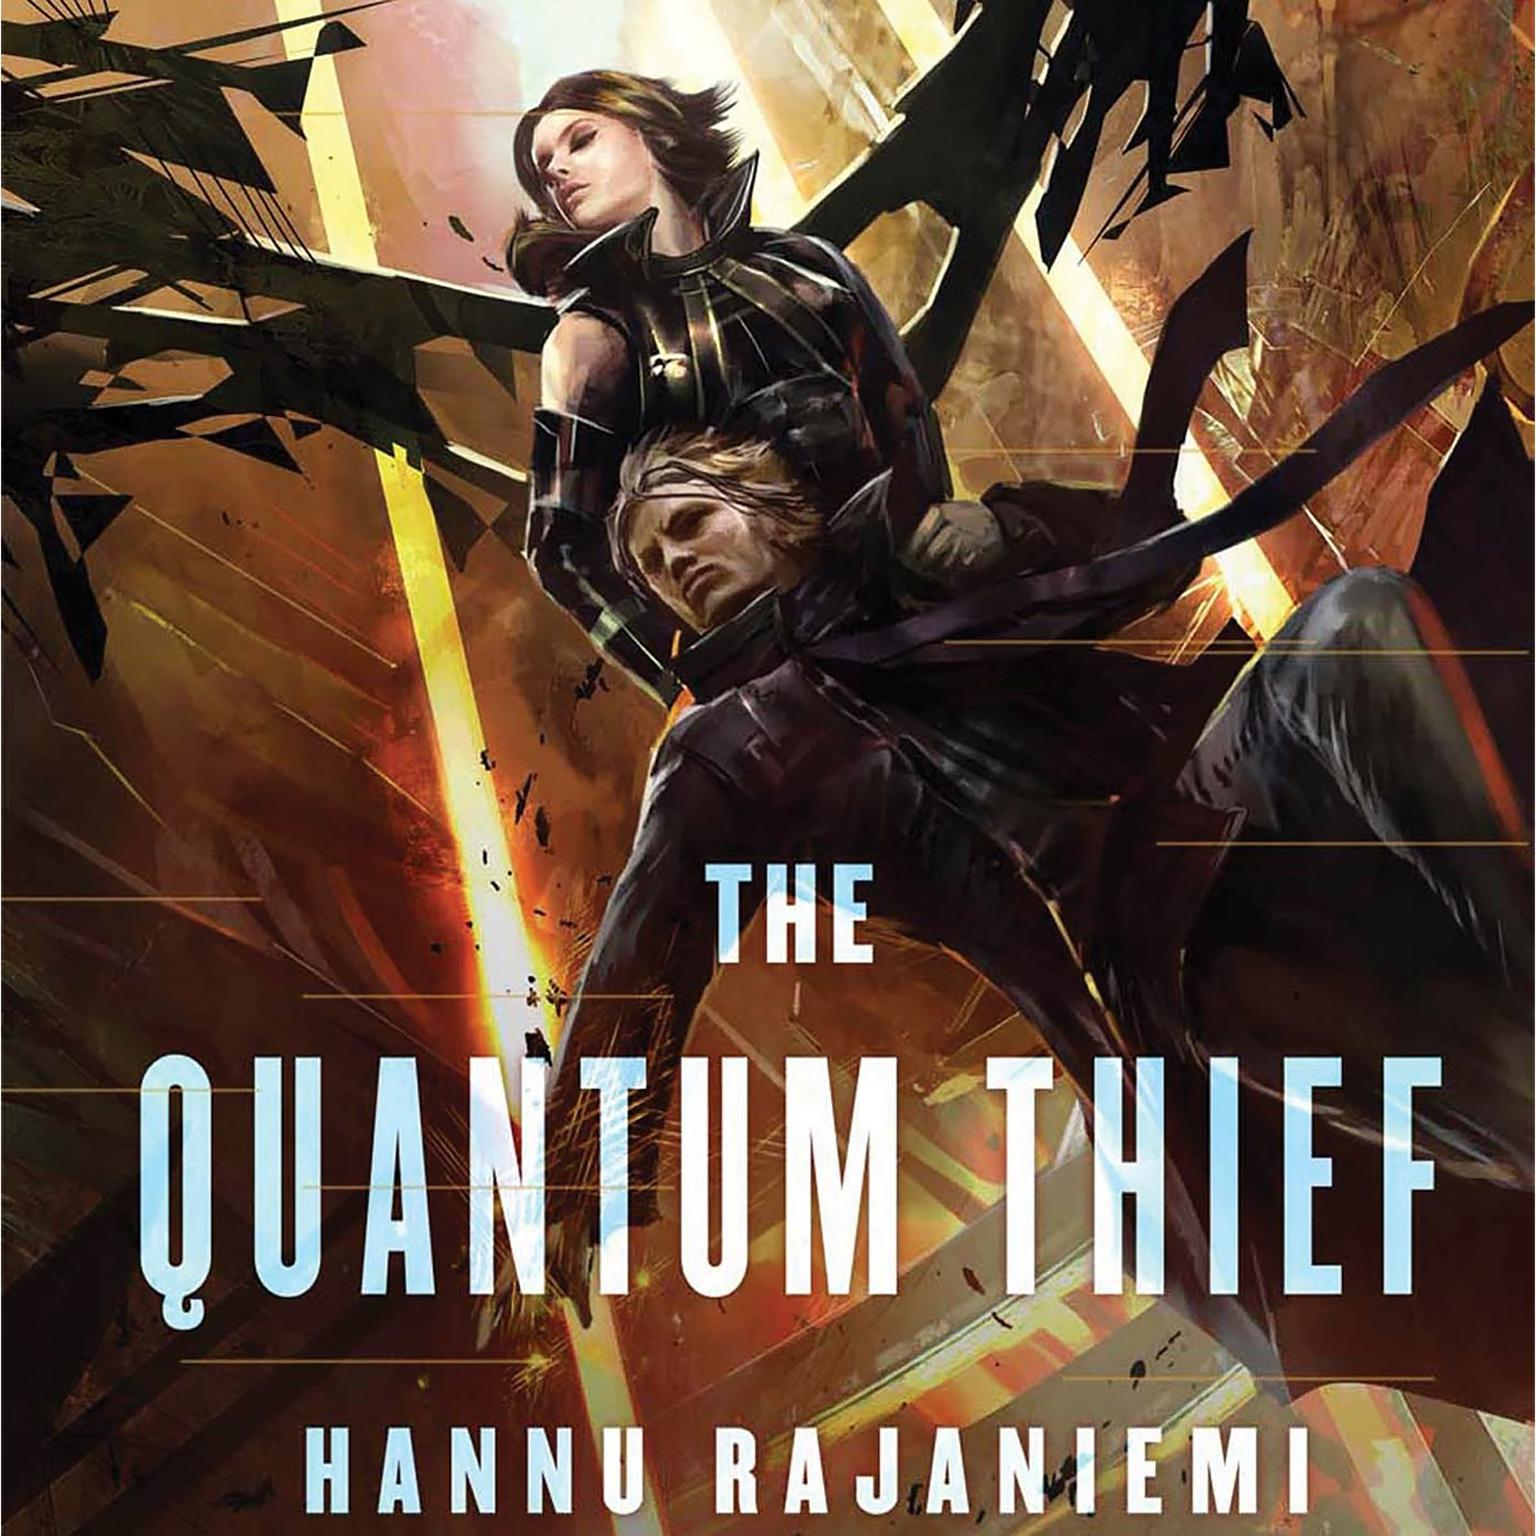 Printable The Quantum Thief Audiobook Cover Art